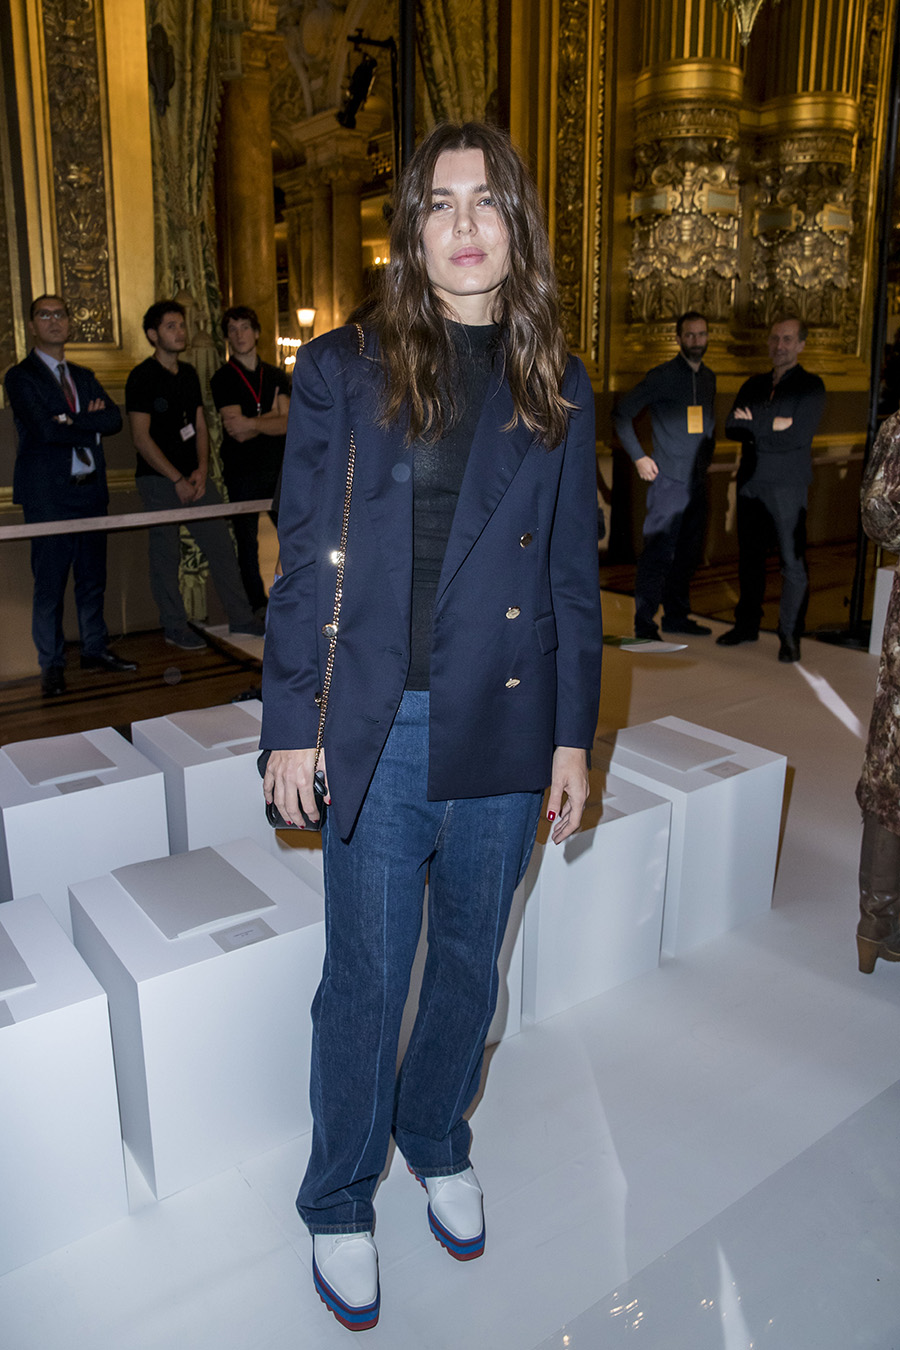 DL u385496 073. Carlota Casiraghi estrena estilo en la 'Paris Fashion Week'